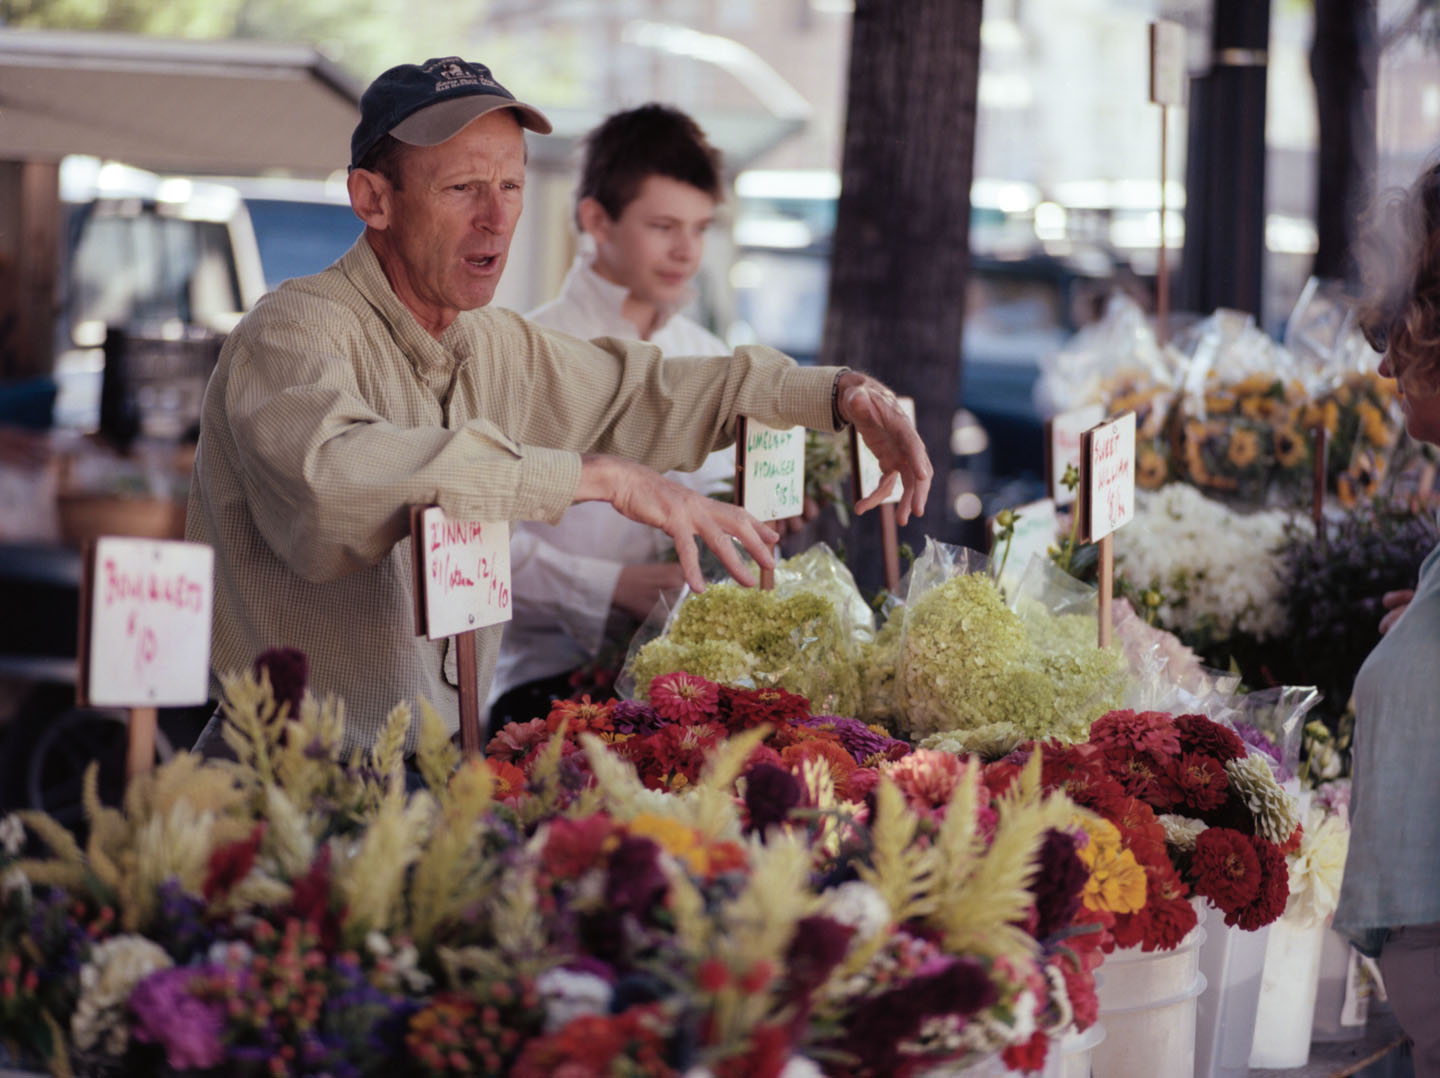 Flower vendors at Salt Lake Farmers Market